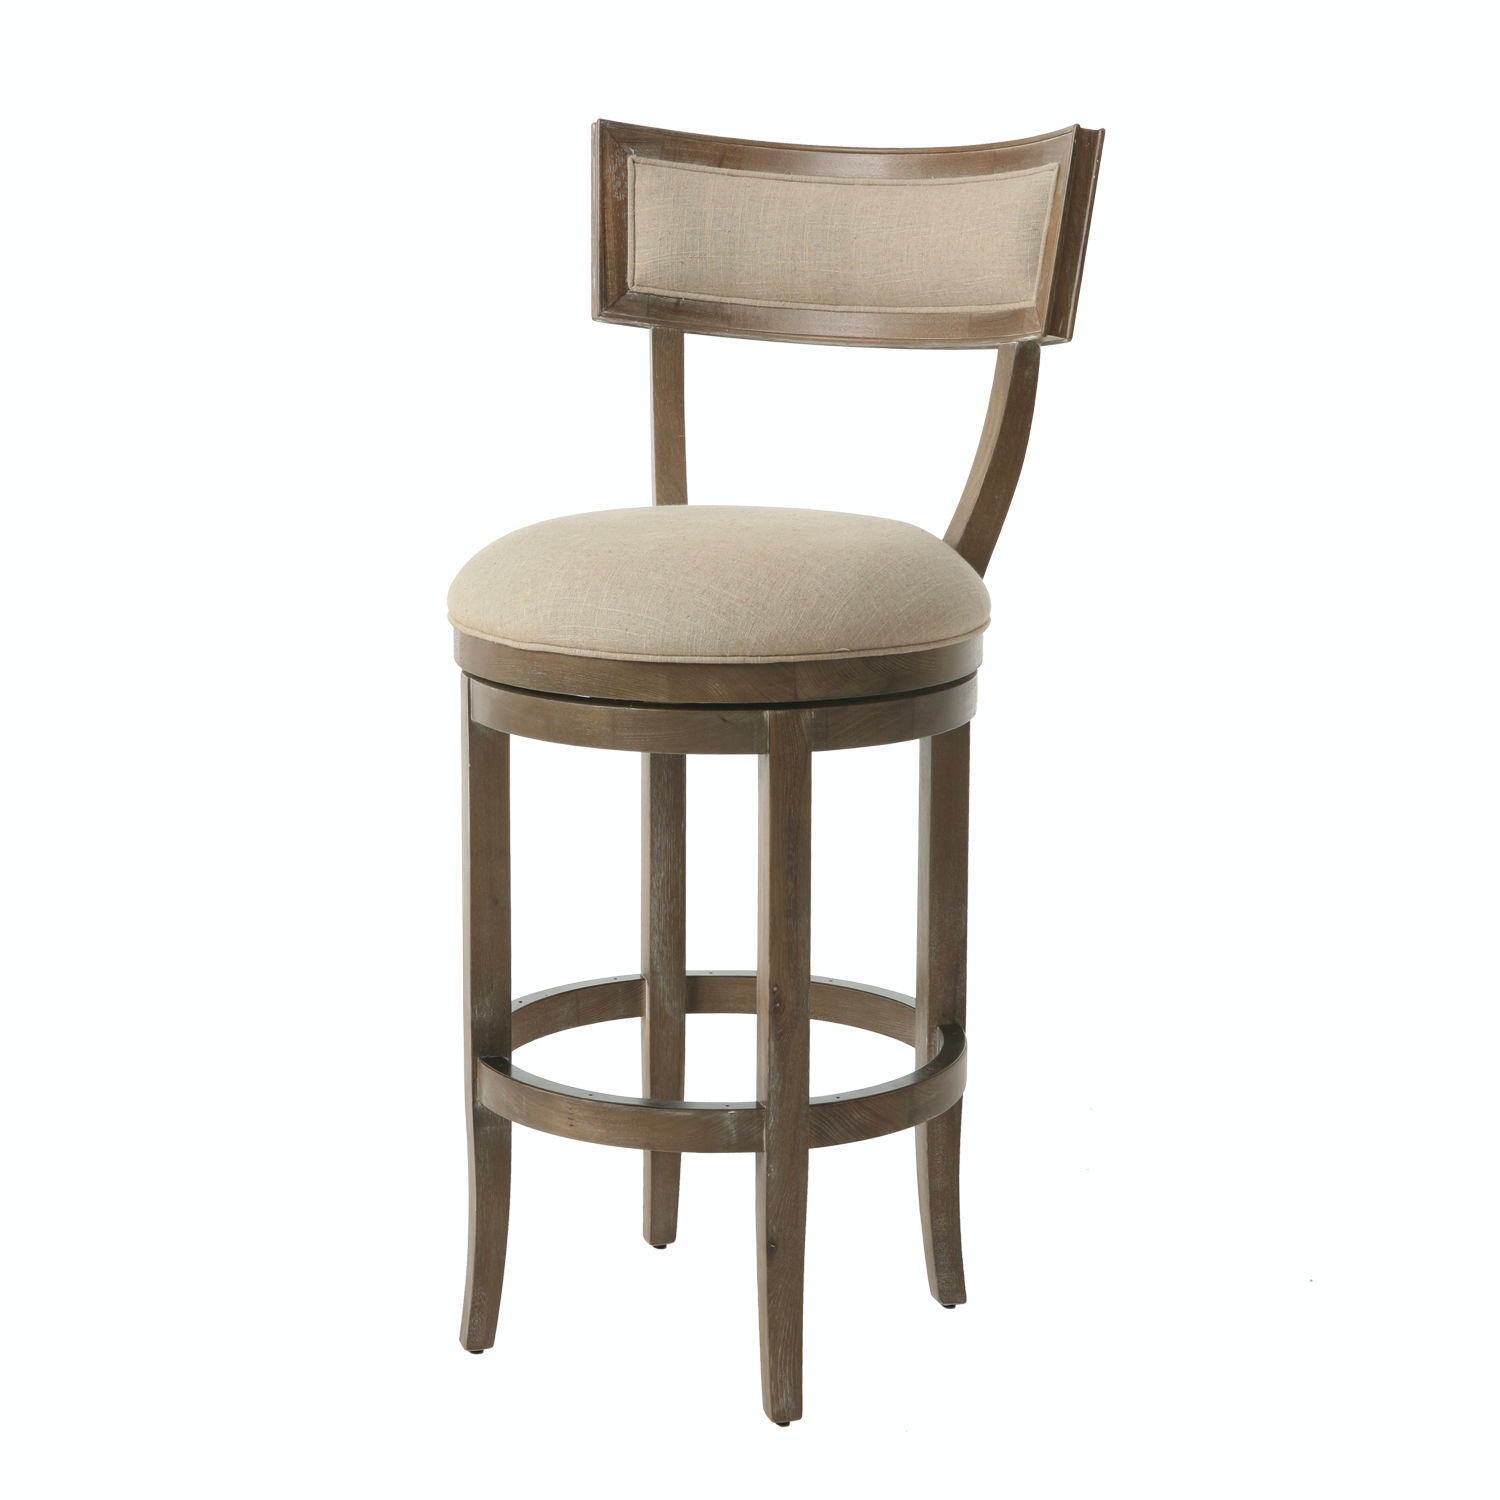 Pastel Furniture Clarksville Swivel Barstool CK 225 DI 353 26